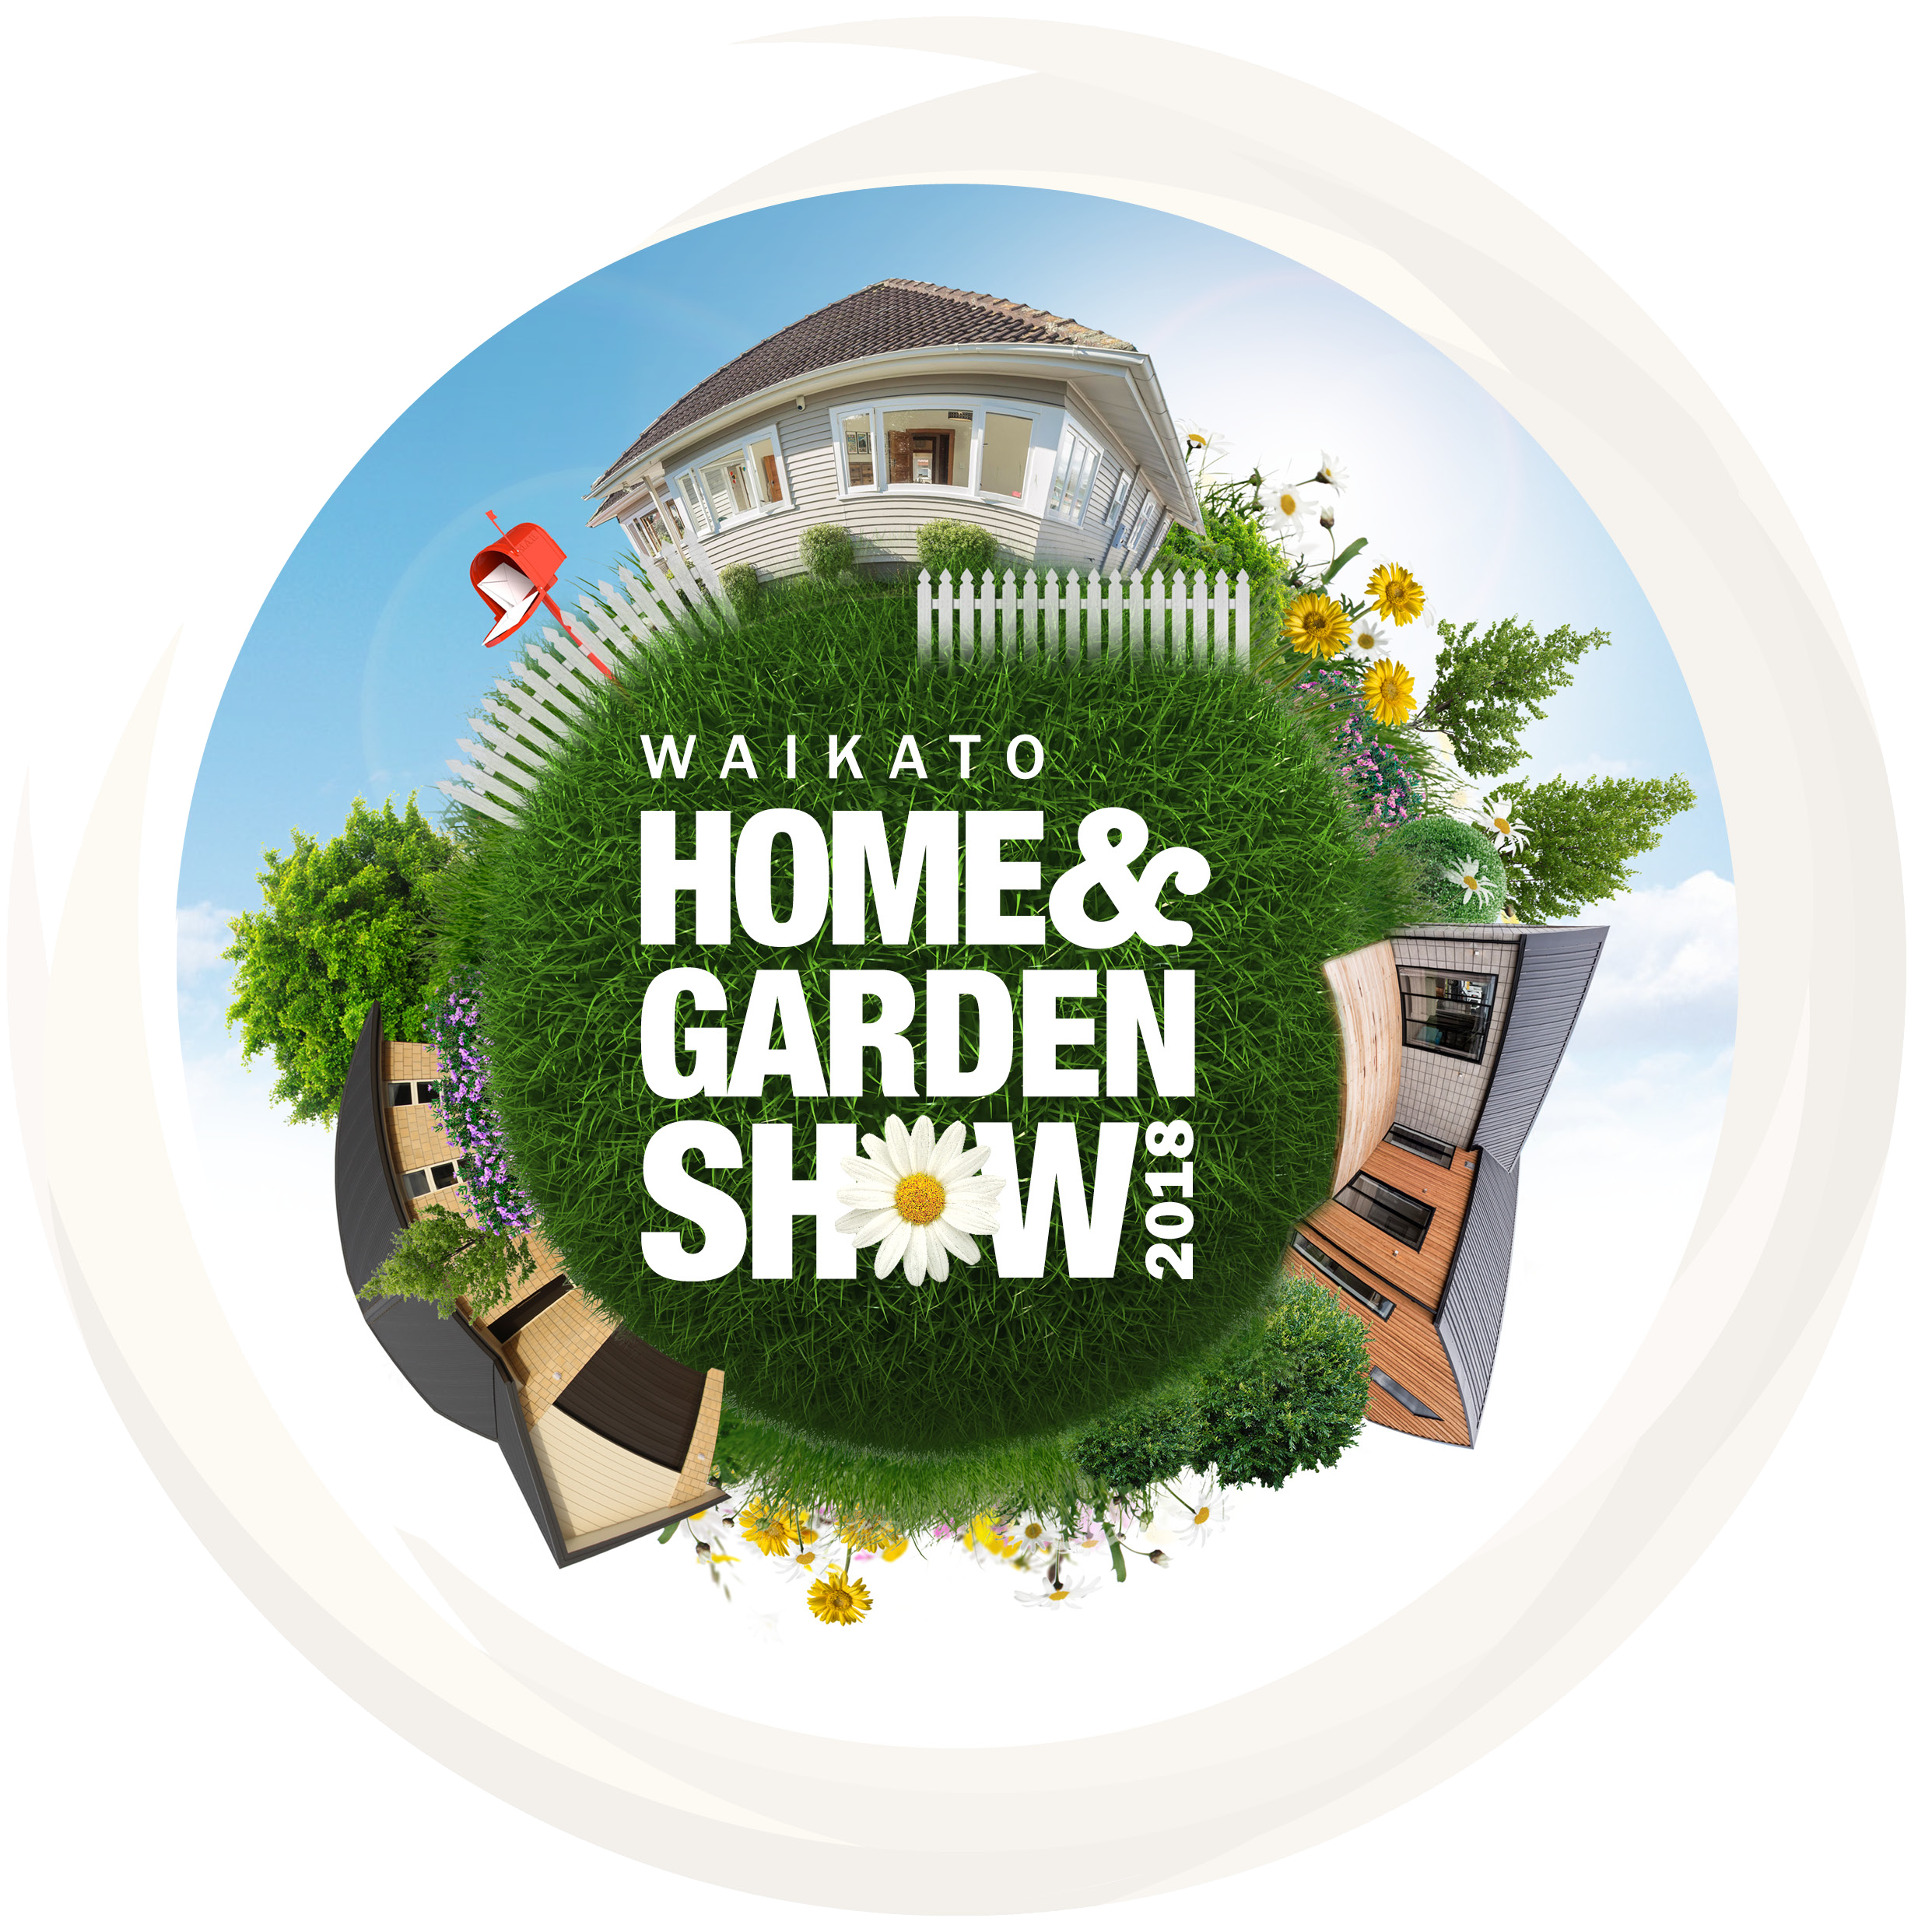 Contact sales for the Waikato Home & Garden Show